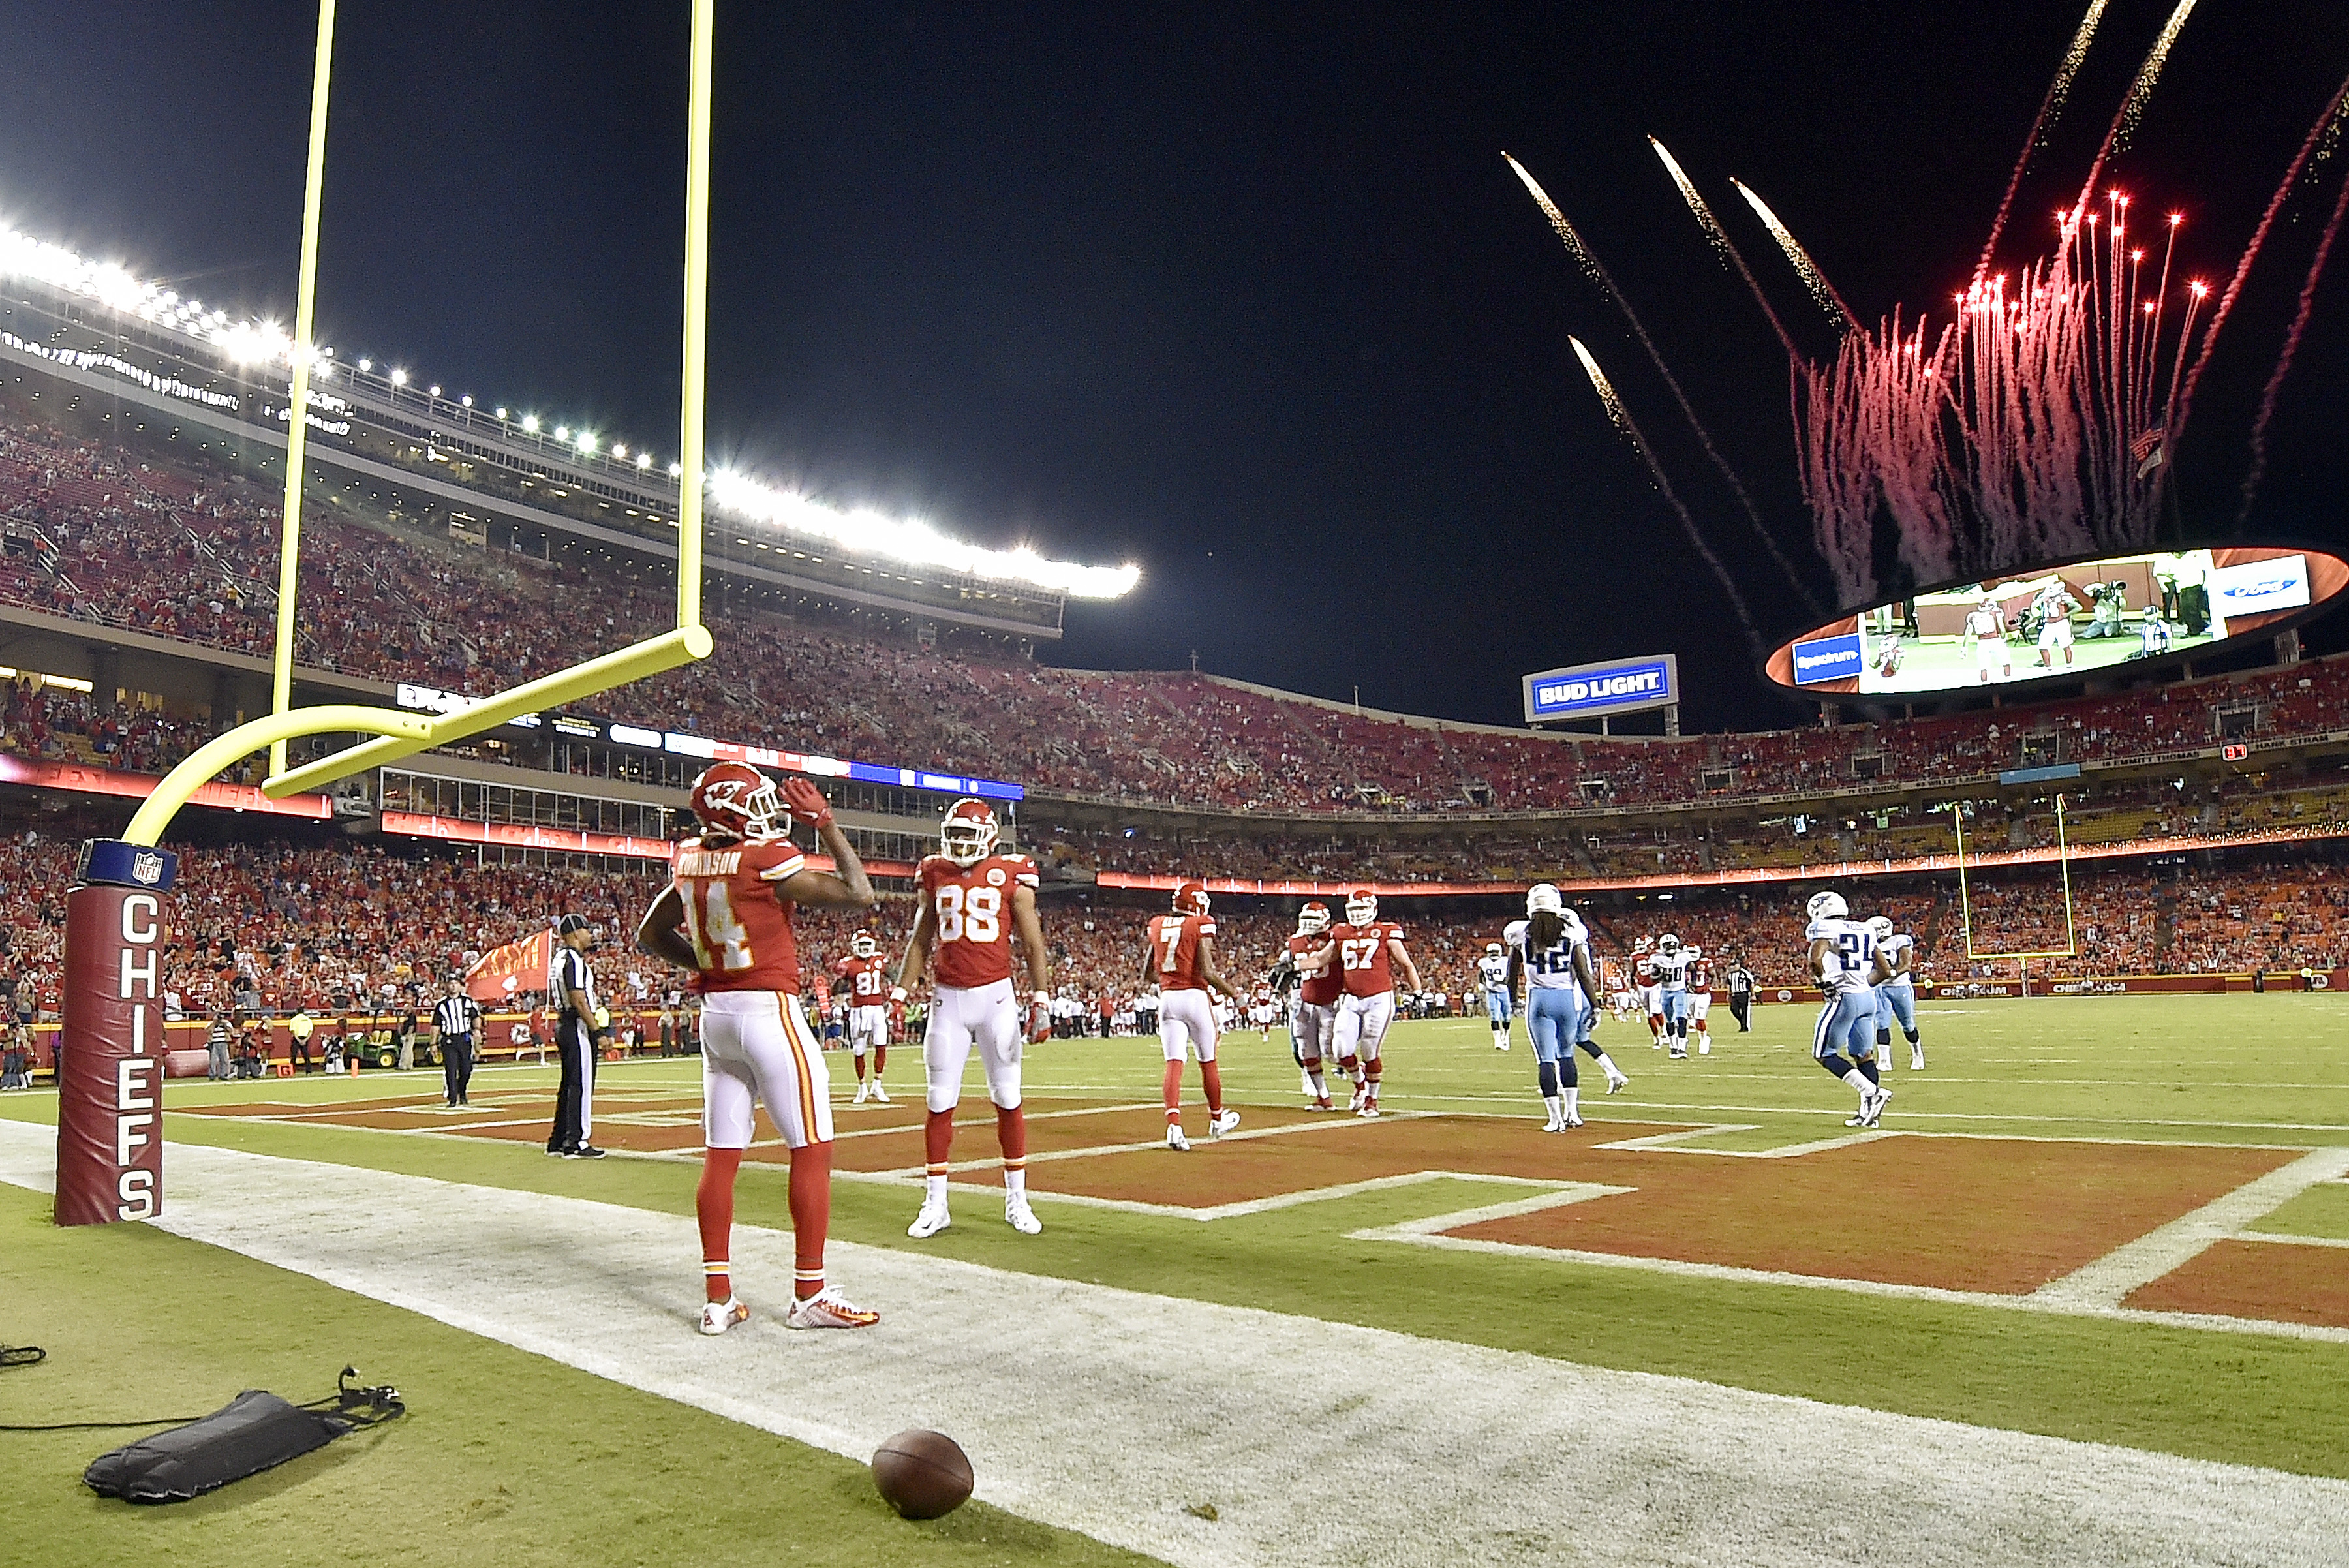 The Kansas City Chiefs score a touchdown against the Tennessee Titans in the 2017 preseason